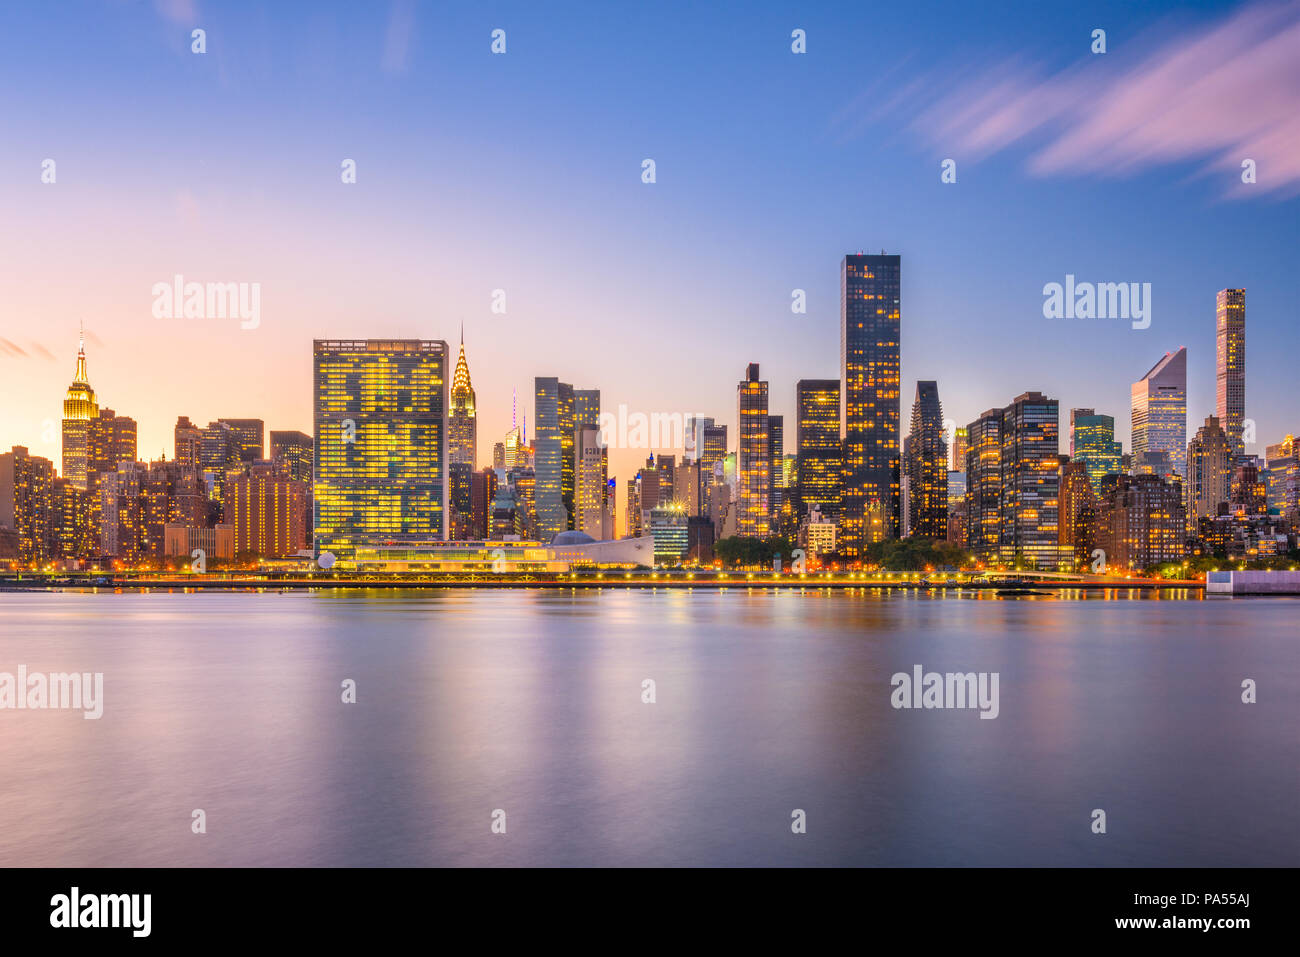 New York, New York, USA midtown skyline from across the East River at dusk. - Stock Image